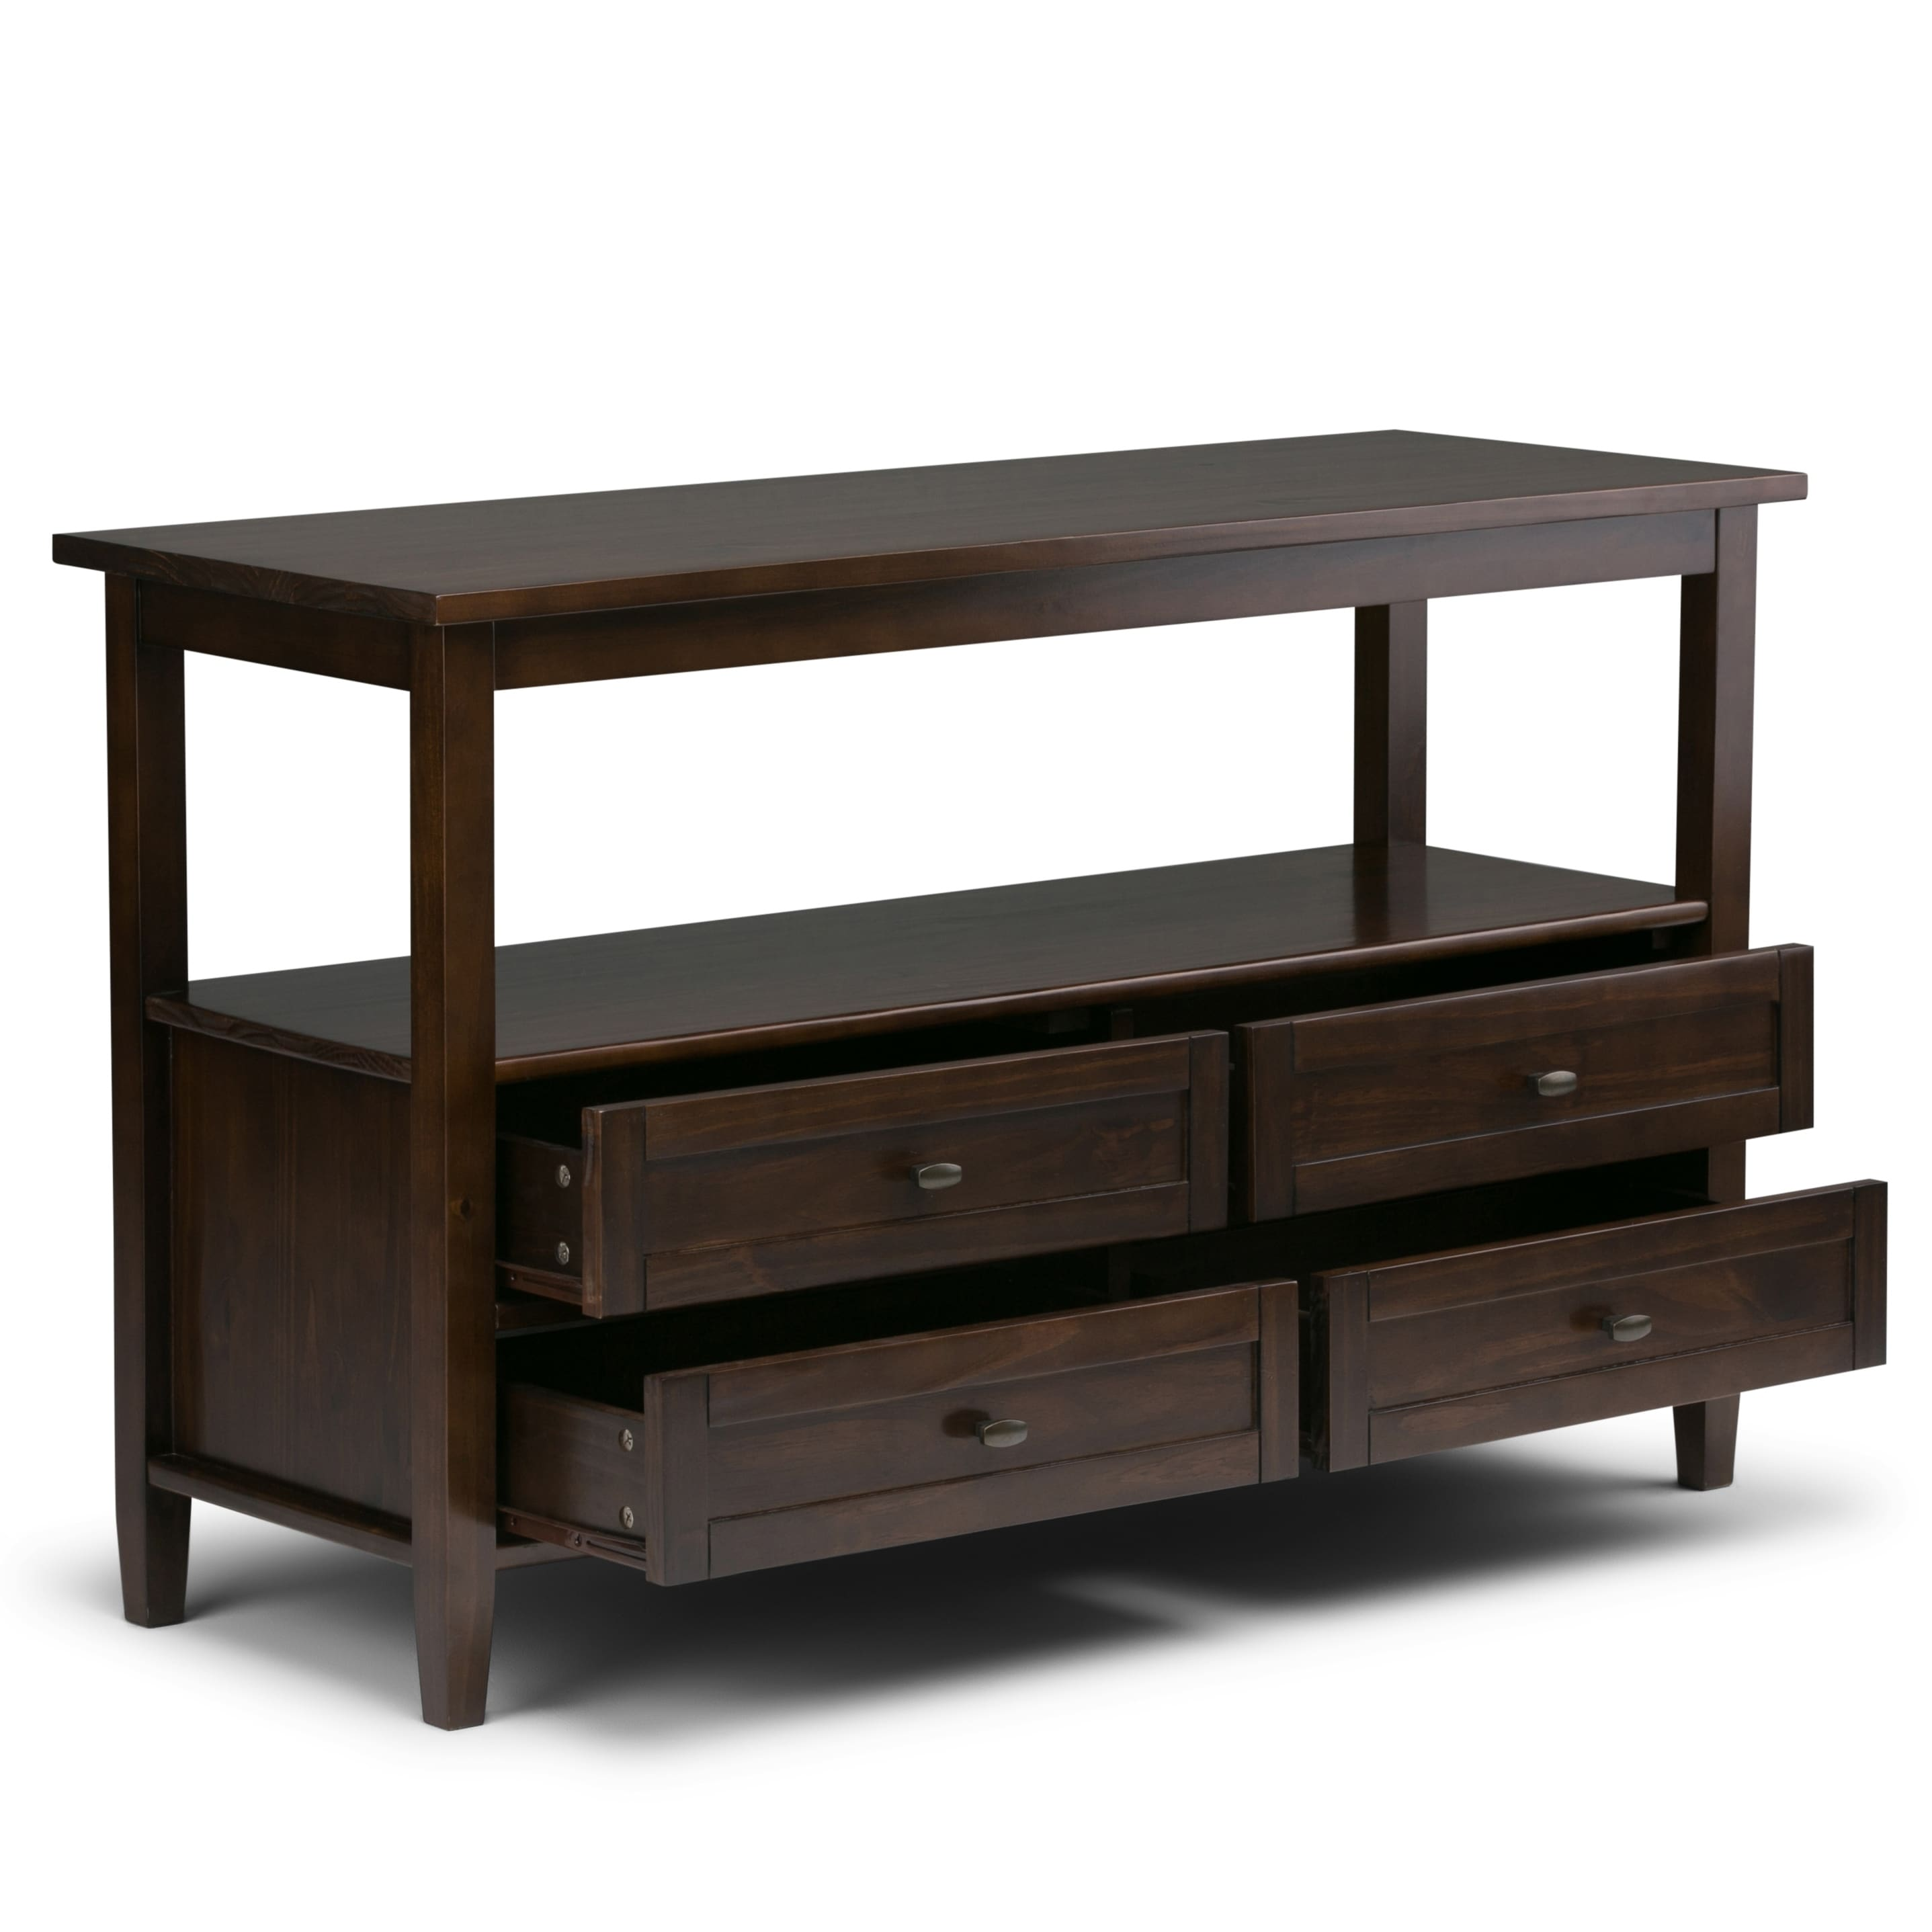 Wyndenhall Norfolk Solid Wood 48 Inch Wide Rustic Console Sofa Table 48 Inches Wide Overstock 13817754 Distressed Grey